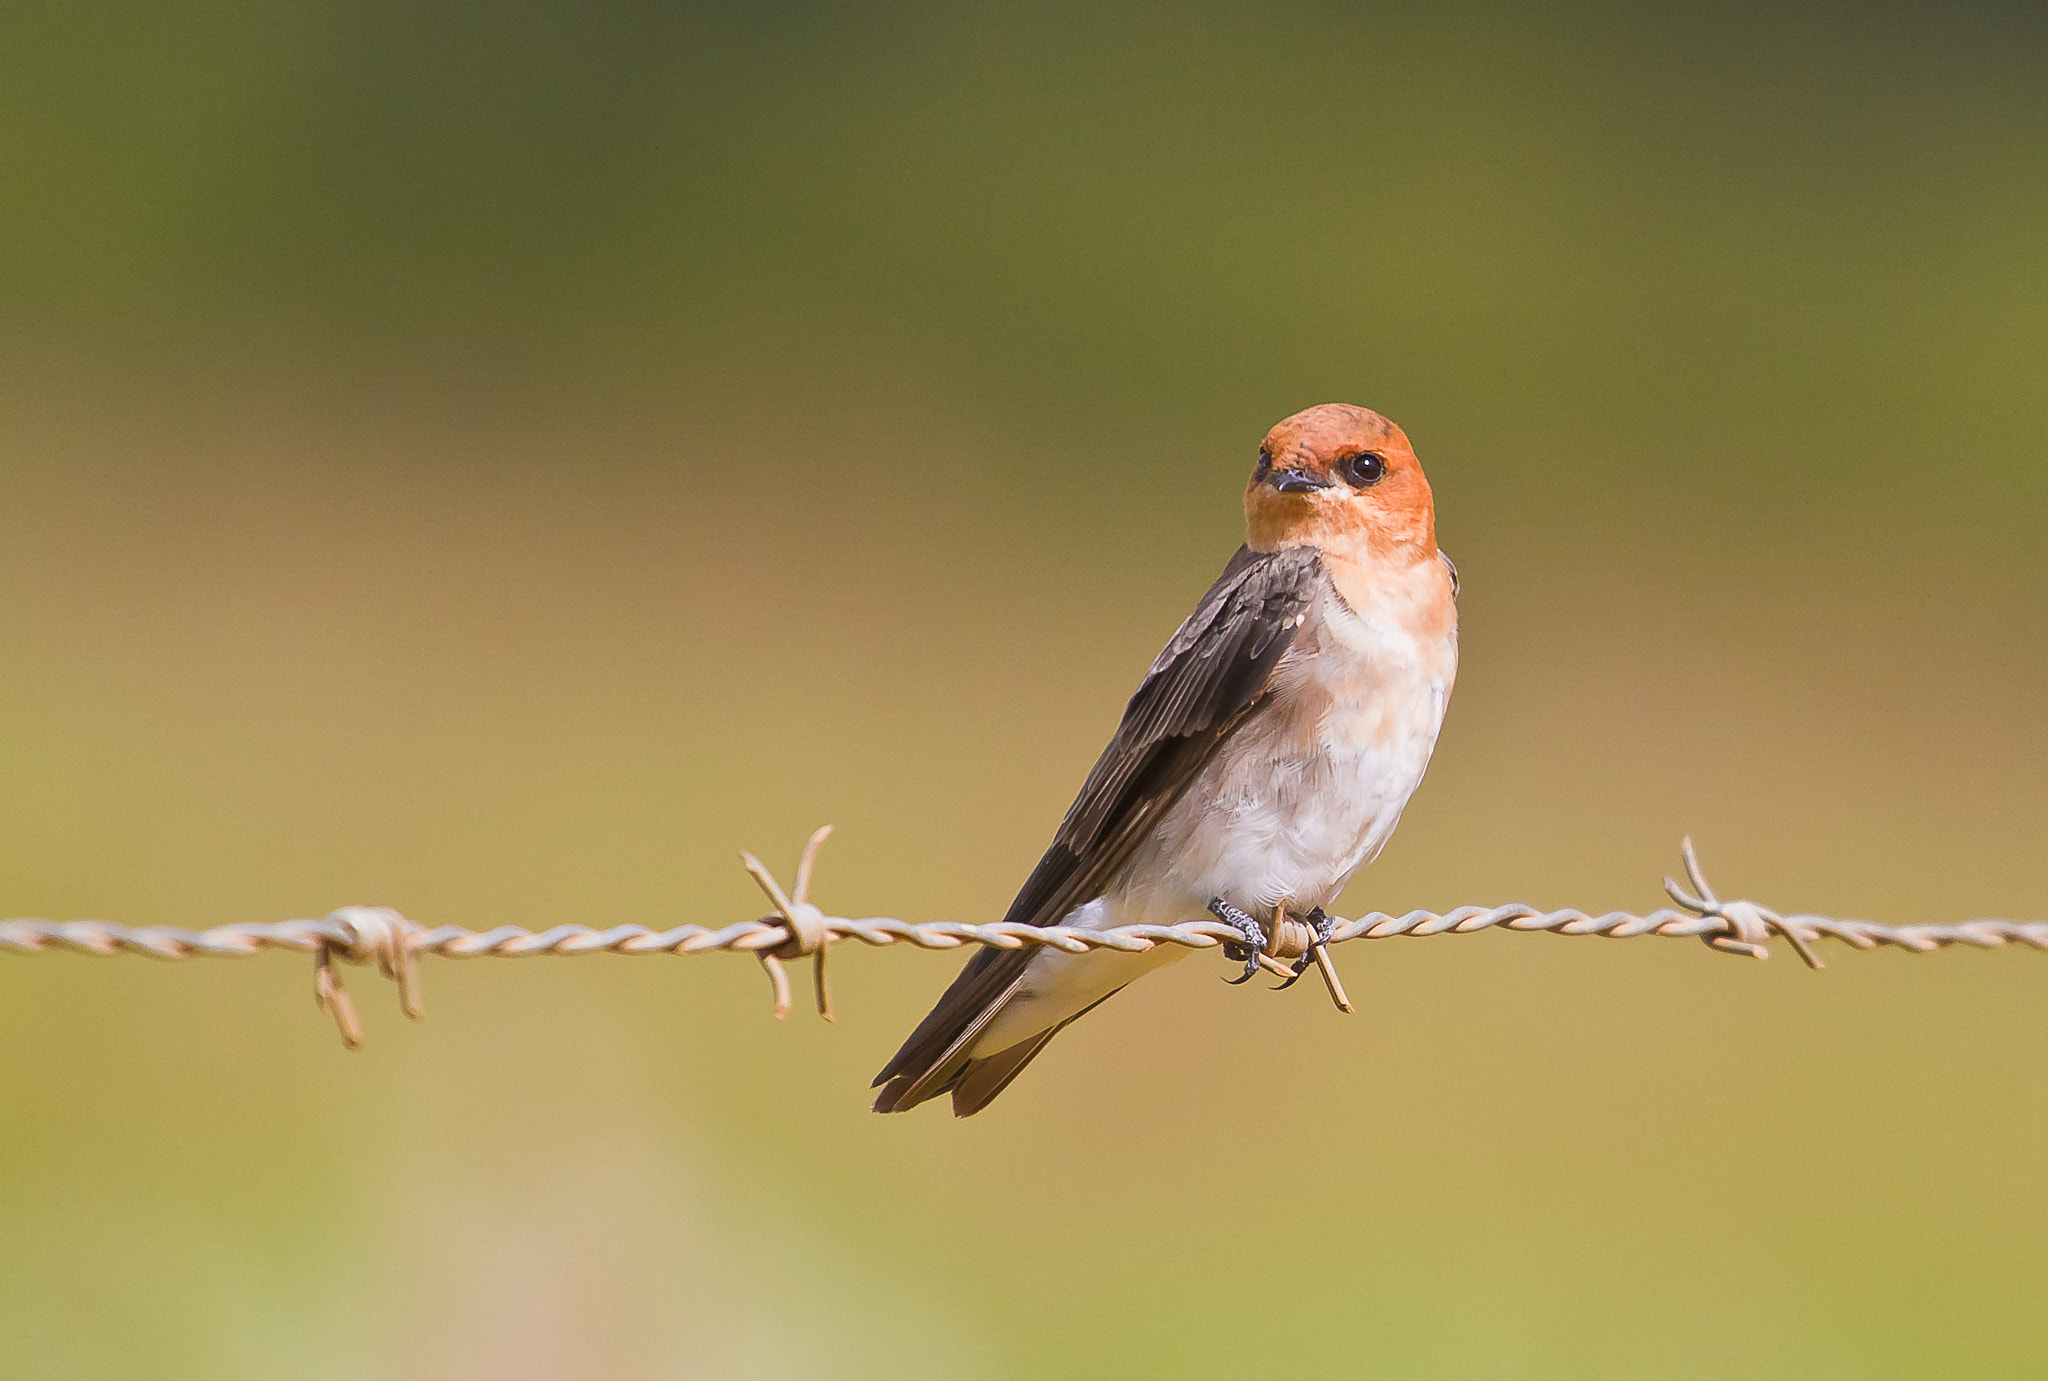 Photograph Tawny-headed Swallow (Alopochelidon fucata) by Bertrando Campos on 500px